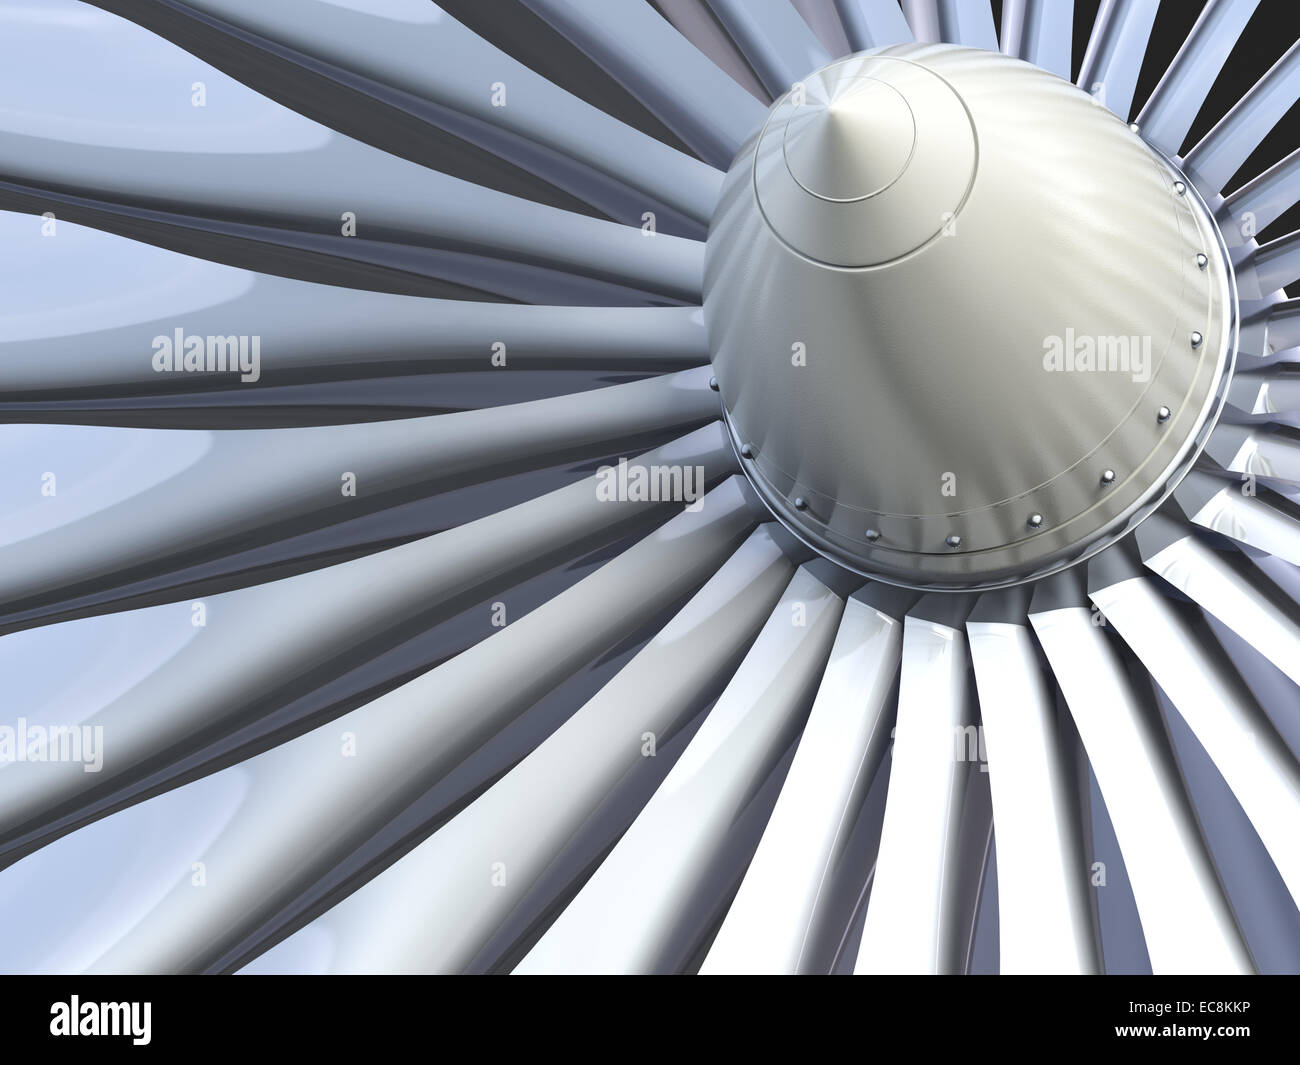 Turbo jet engine - Stock Image